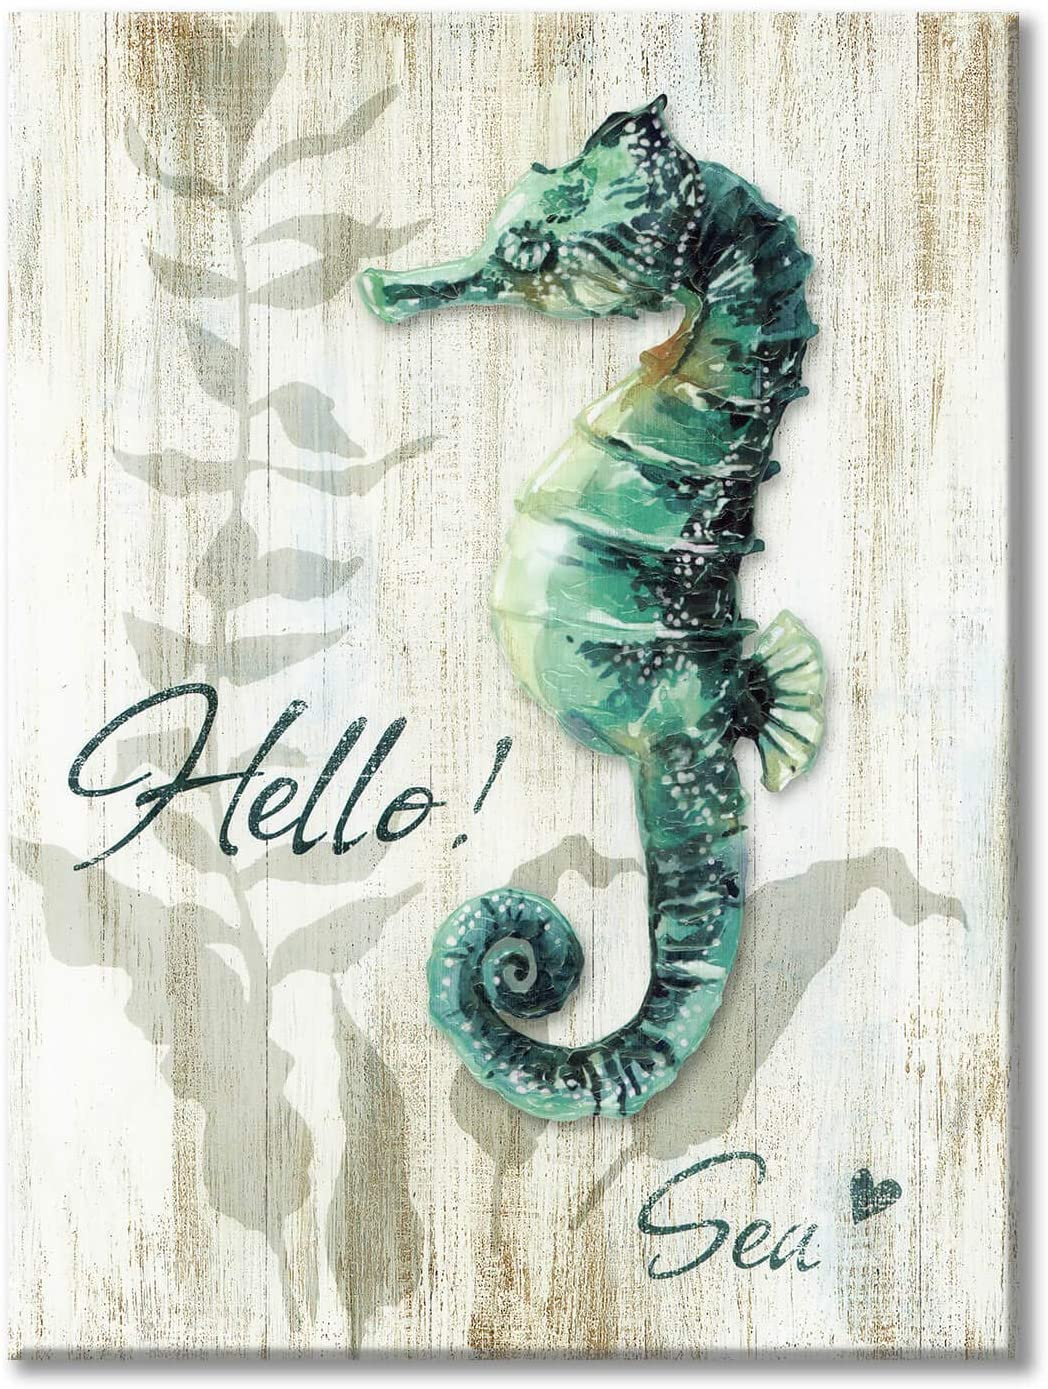 Marine Life Picture Wall Art: Rustic Seahorse Artwork with Wooden Background Painting on Canvas for Bedroom (24'' x 18'' x 1 Panel)